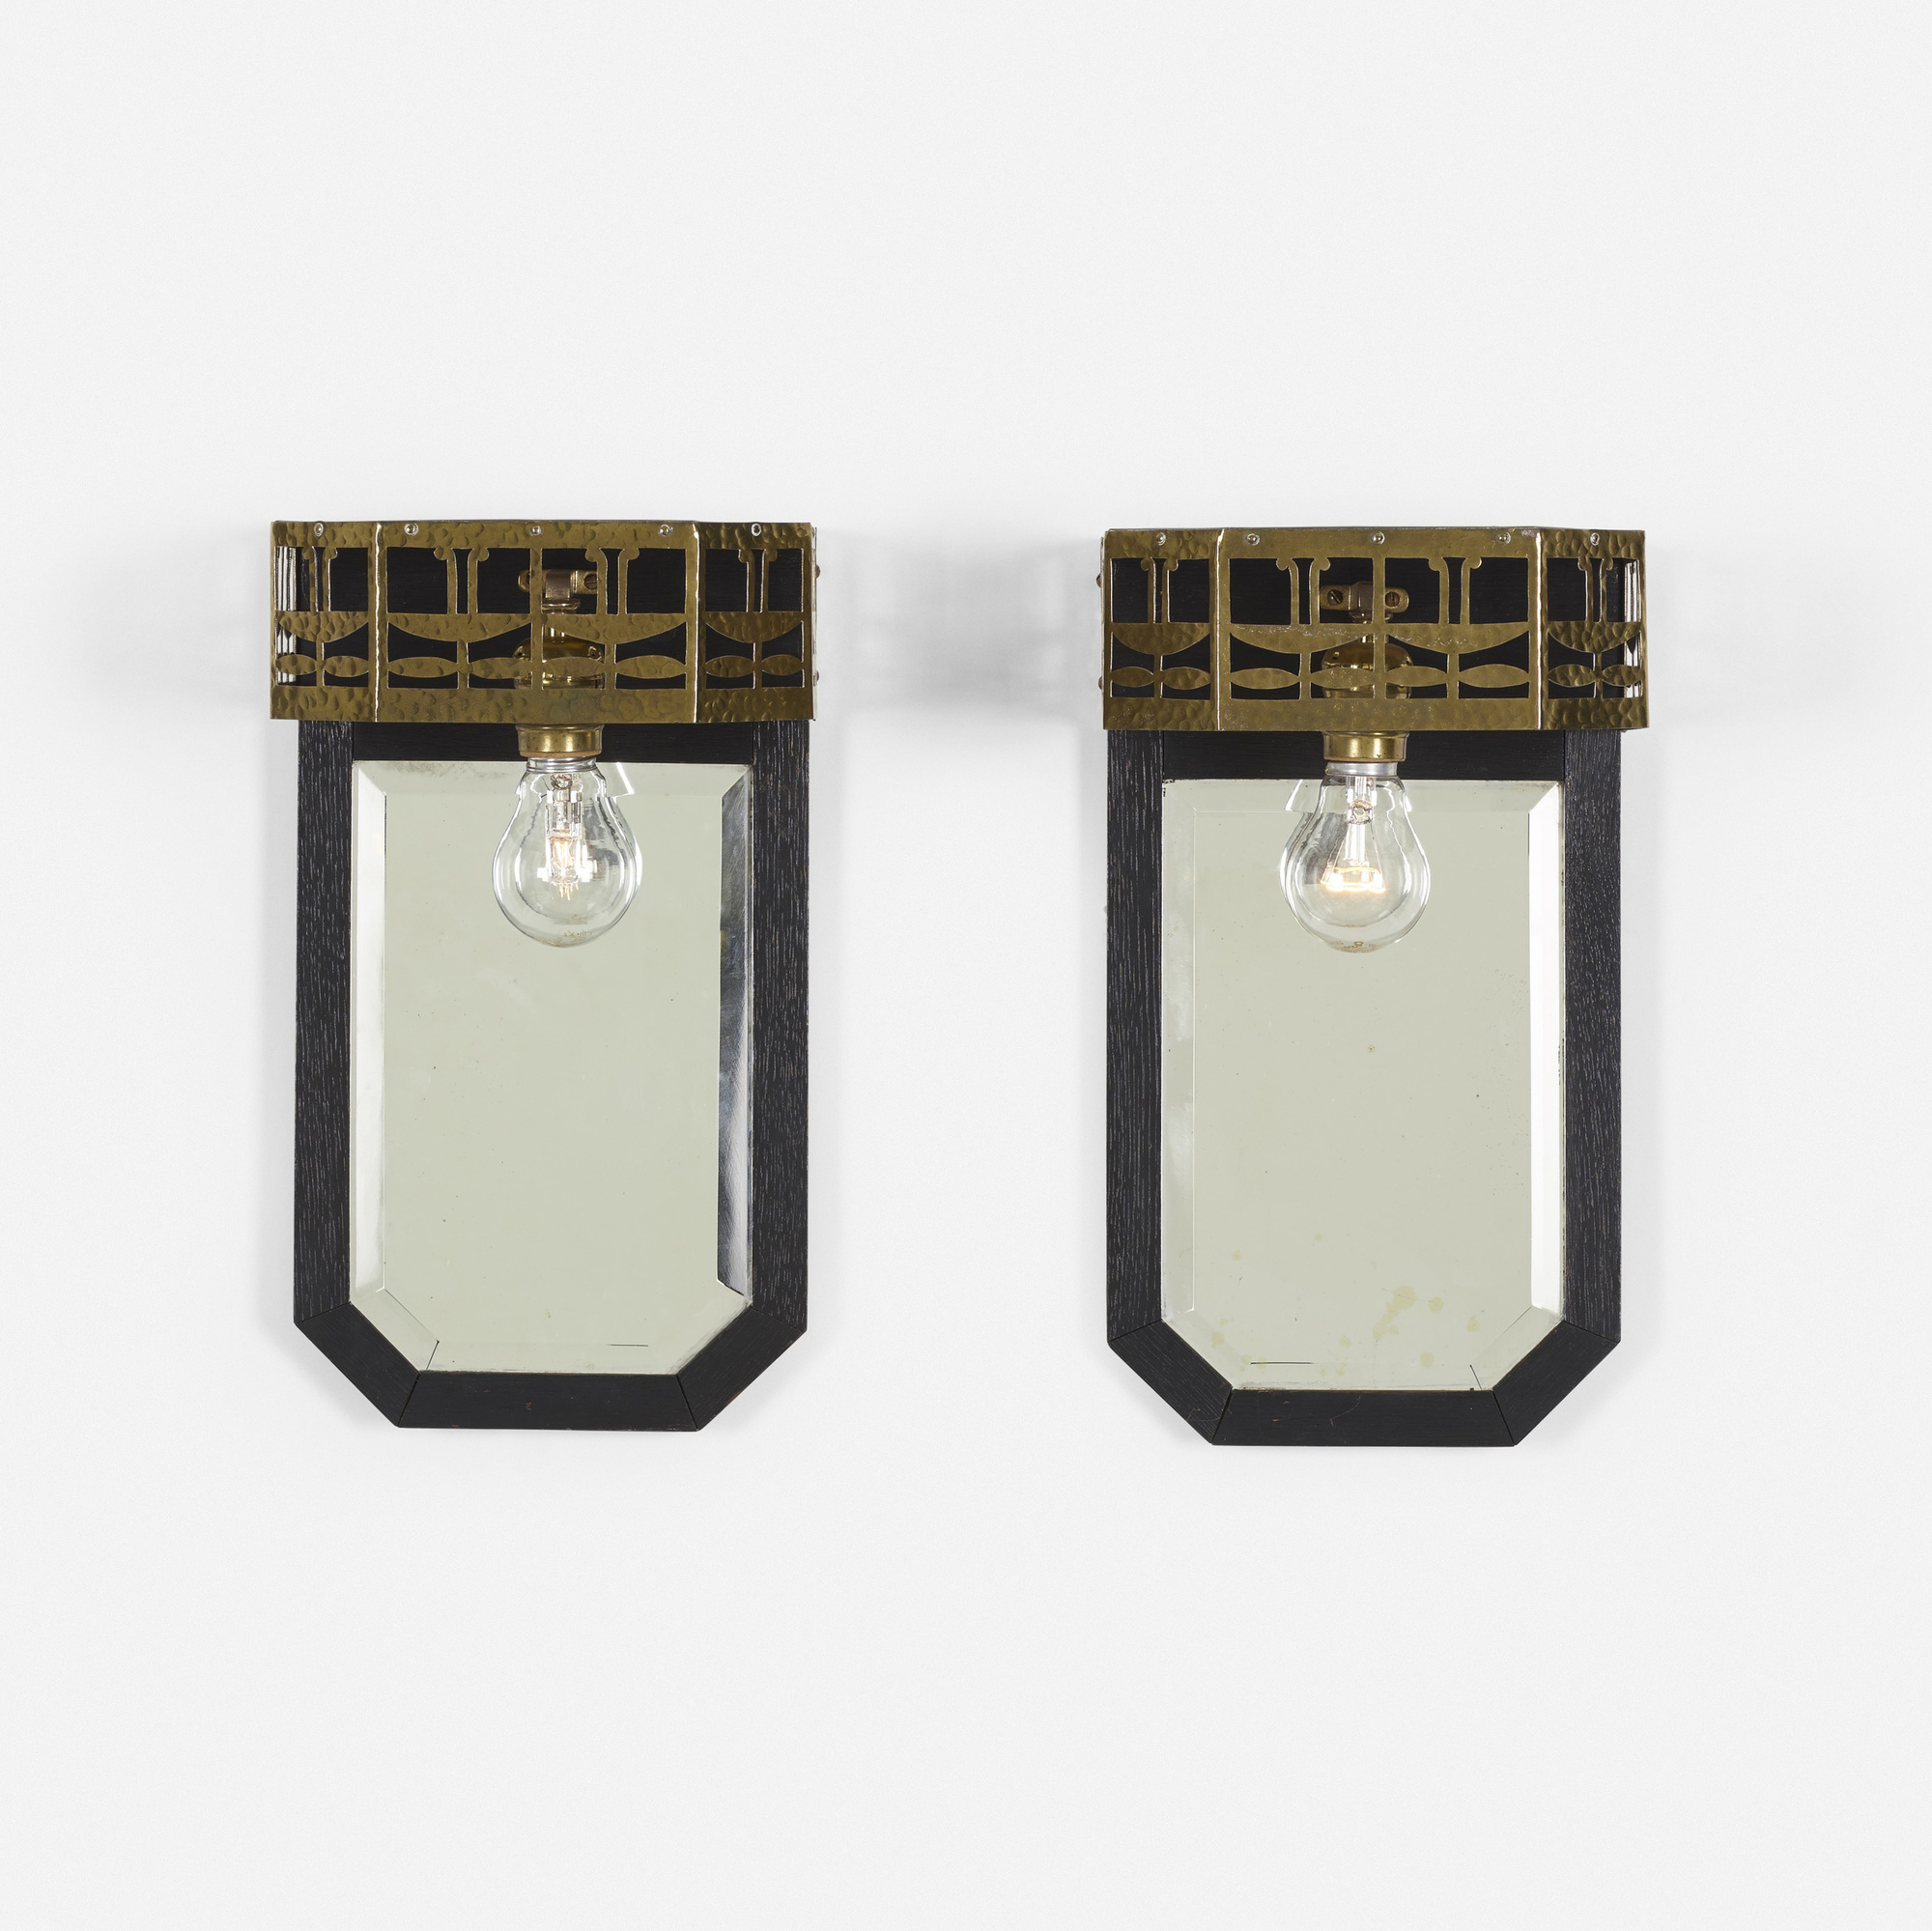 317: Viennese Secessionist / sconces, pair (2 of 2)